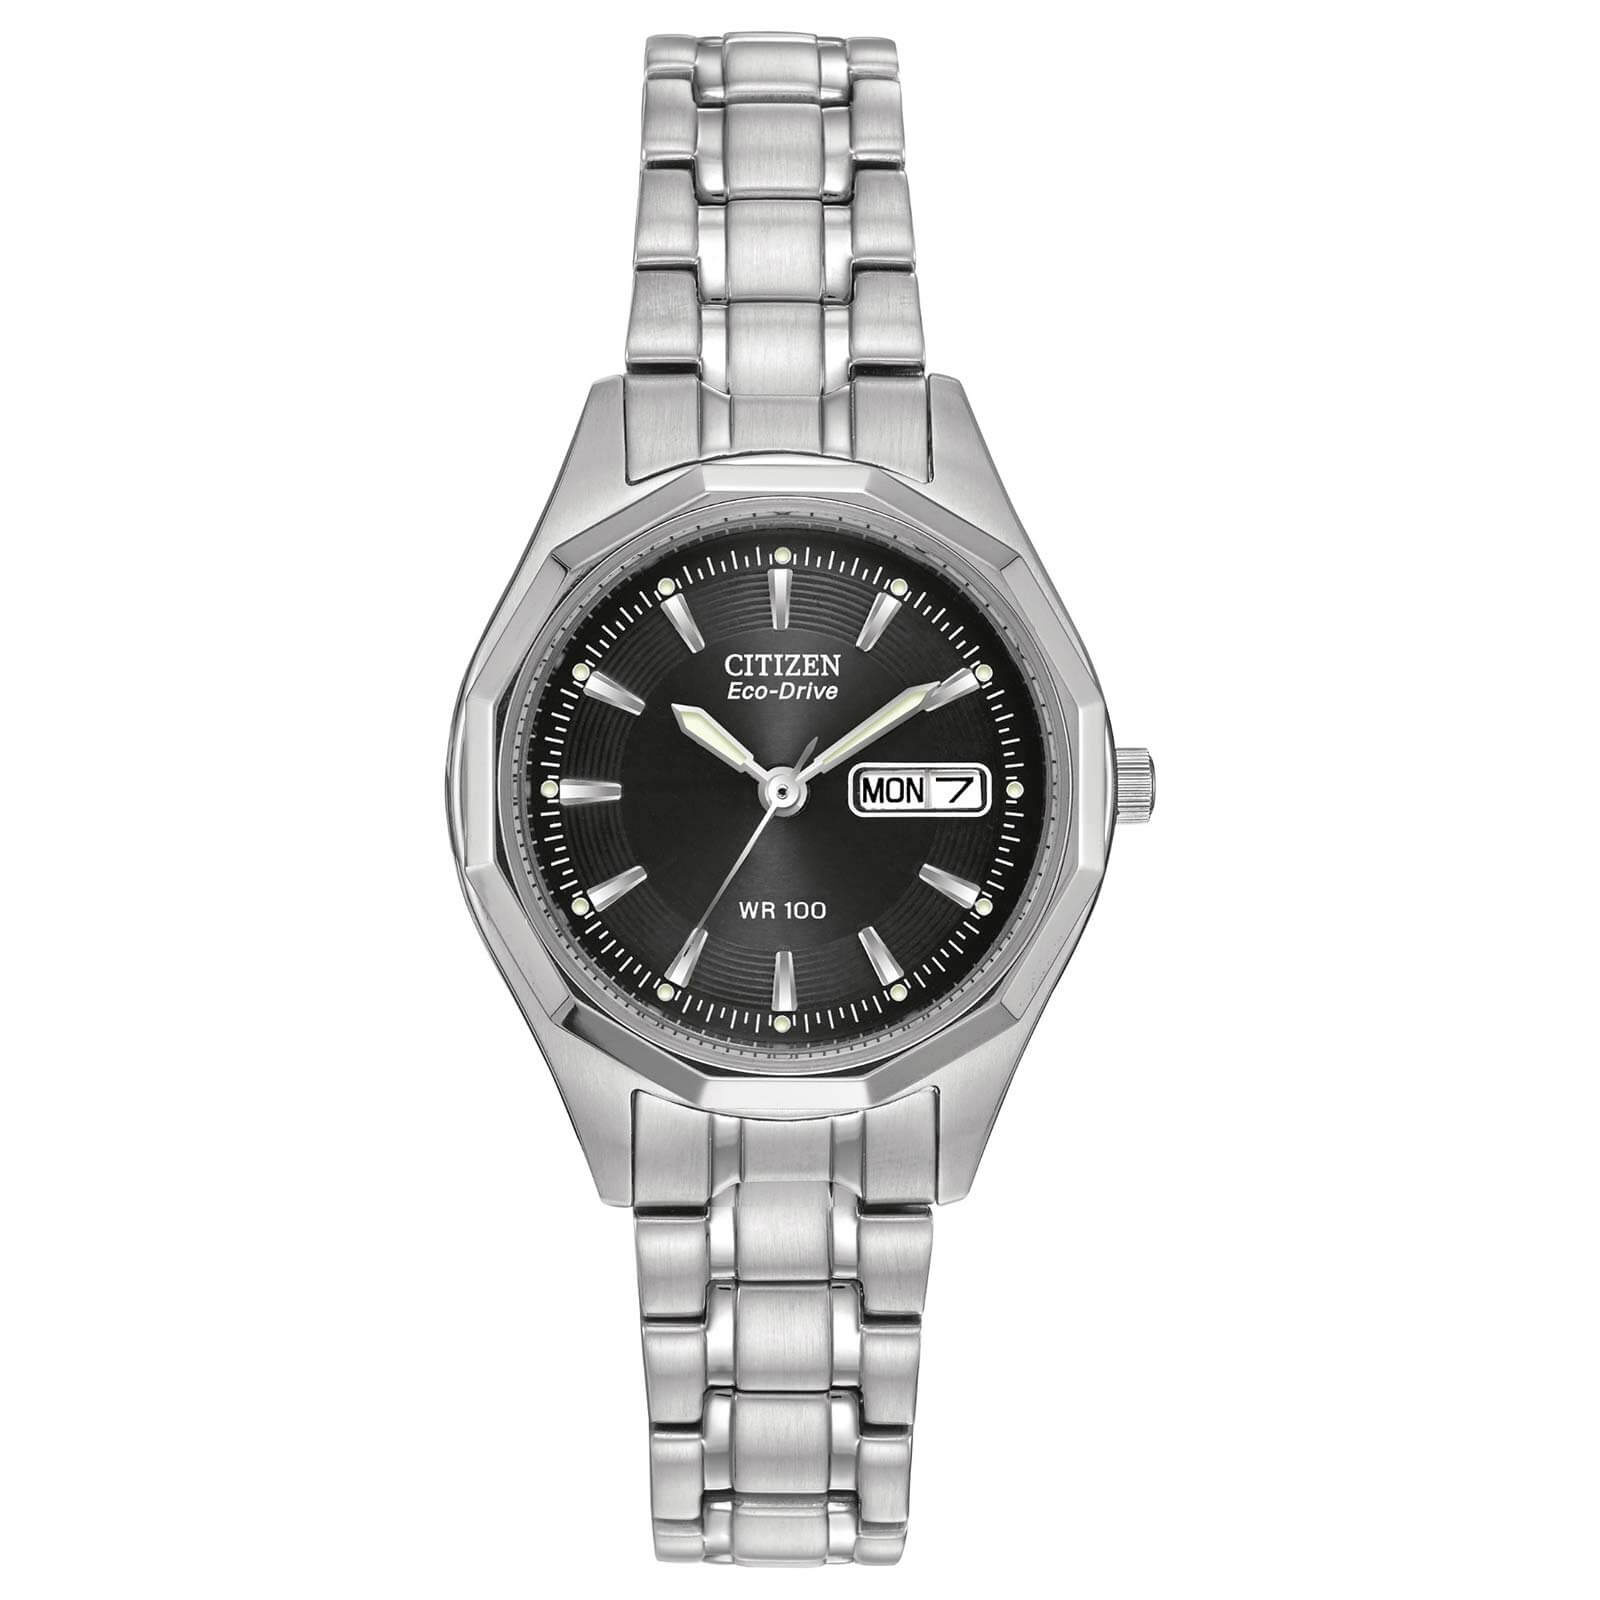 Best Citizen Watches for Women - Luxurious Watch Review 50a8663c5